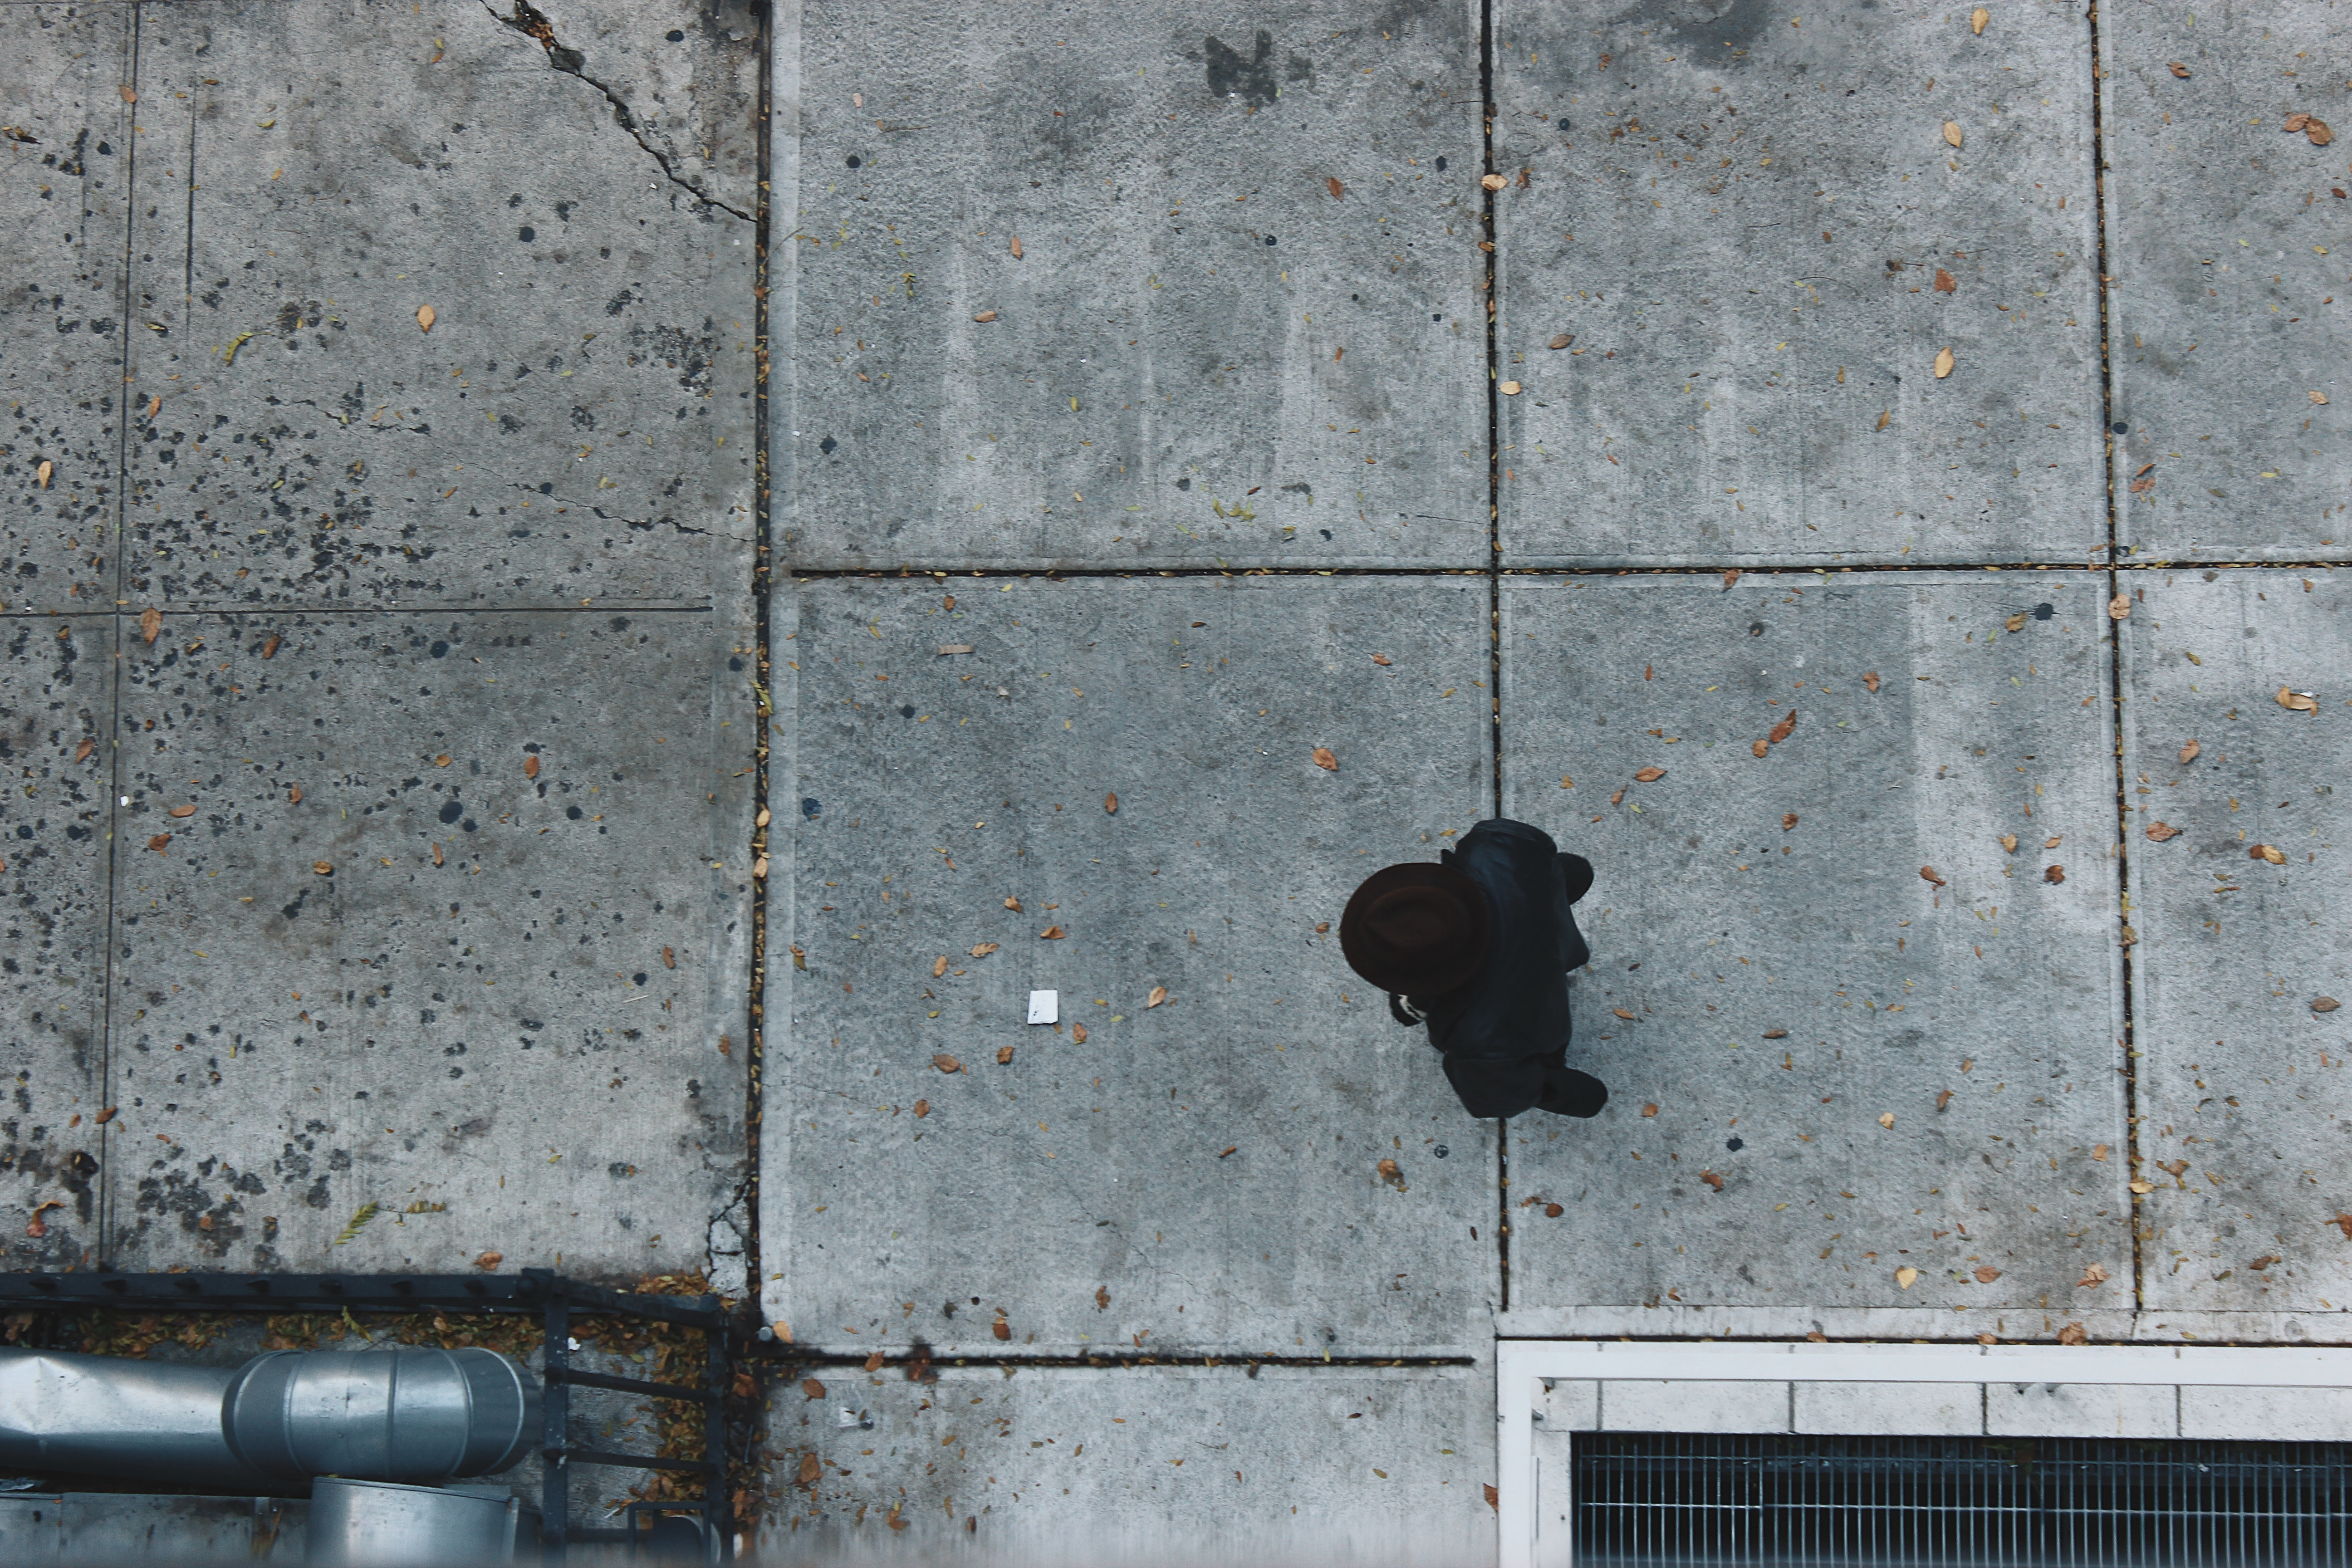 aerial photography of person standing near concrete building